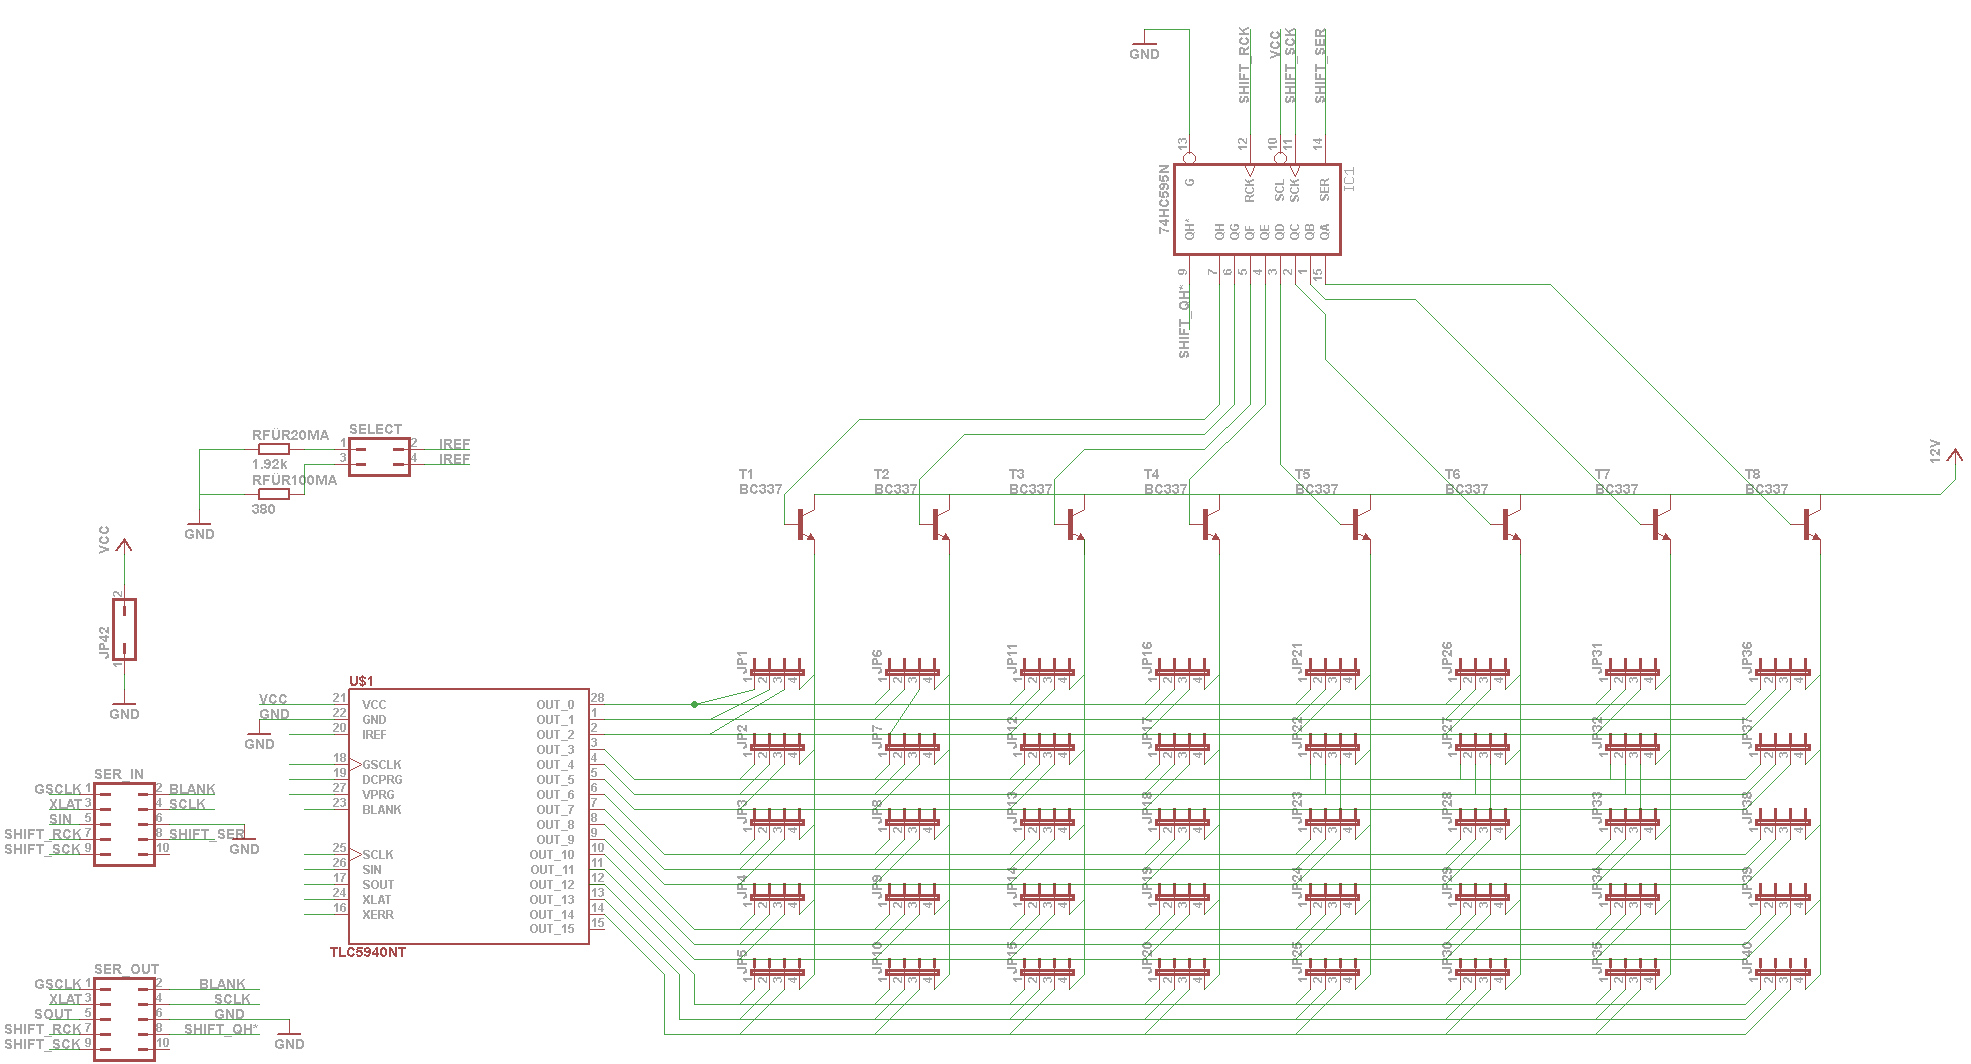 Led Array Multiplex Mit Tlc5940 Schematic For The Ledmatrix Showing 4x5 Matrix Ledarray